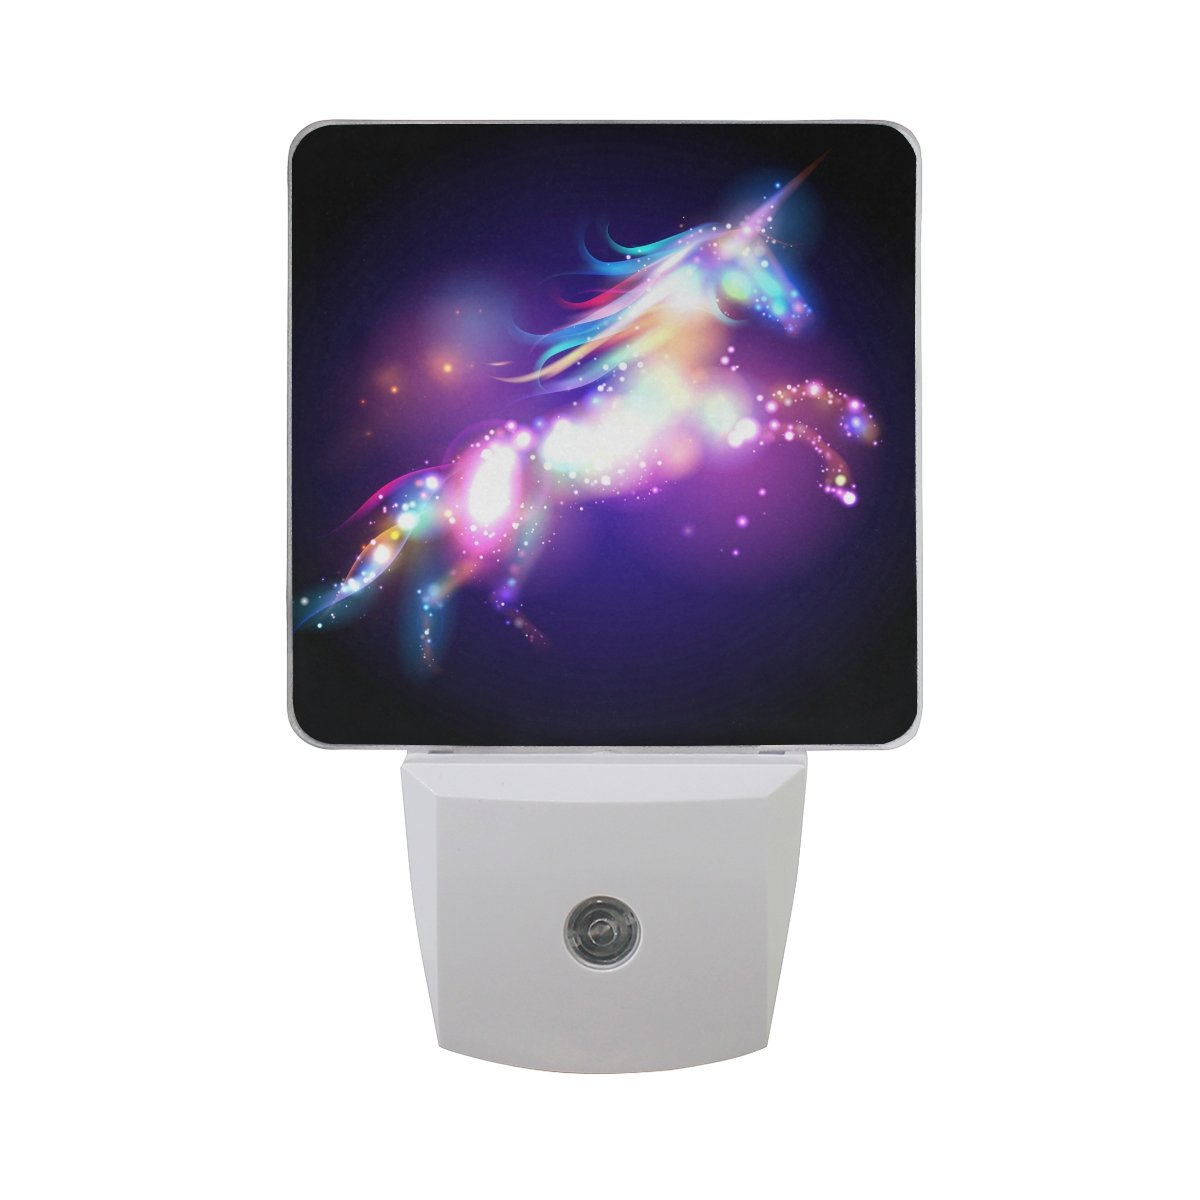 JOYPRINT Led Night Light Animal Fantasy Unicorn, Auto Senor Dusk to Dawn Night Light Plug in for Kids Baby Girls Boys Adults Room